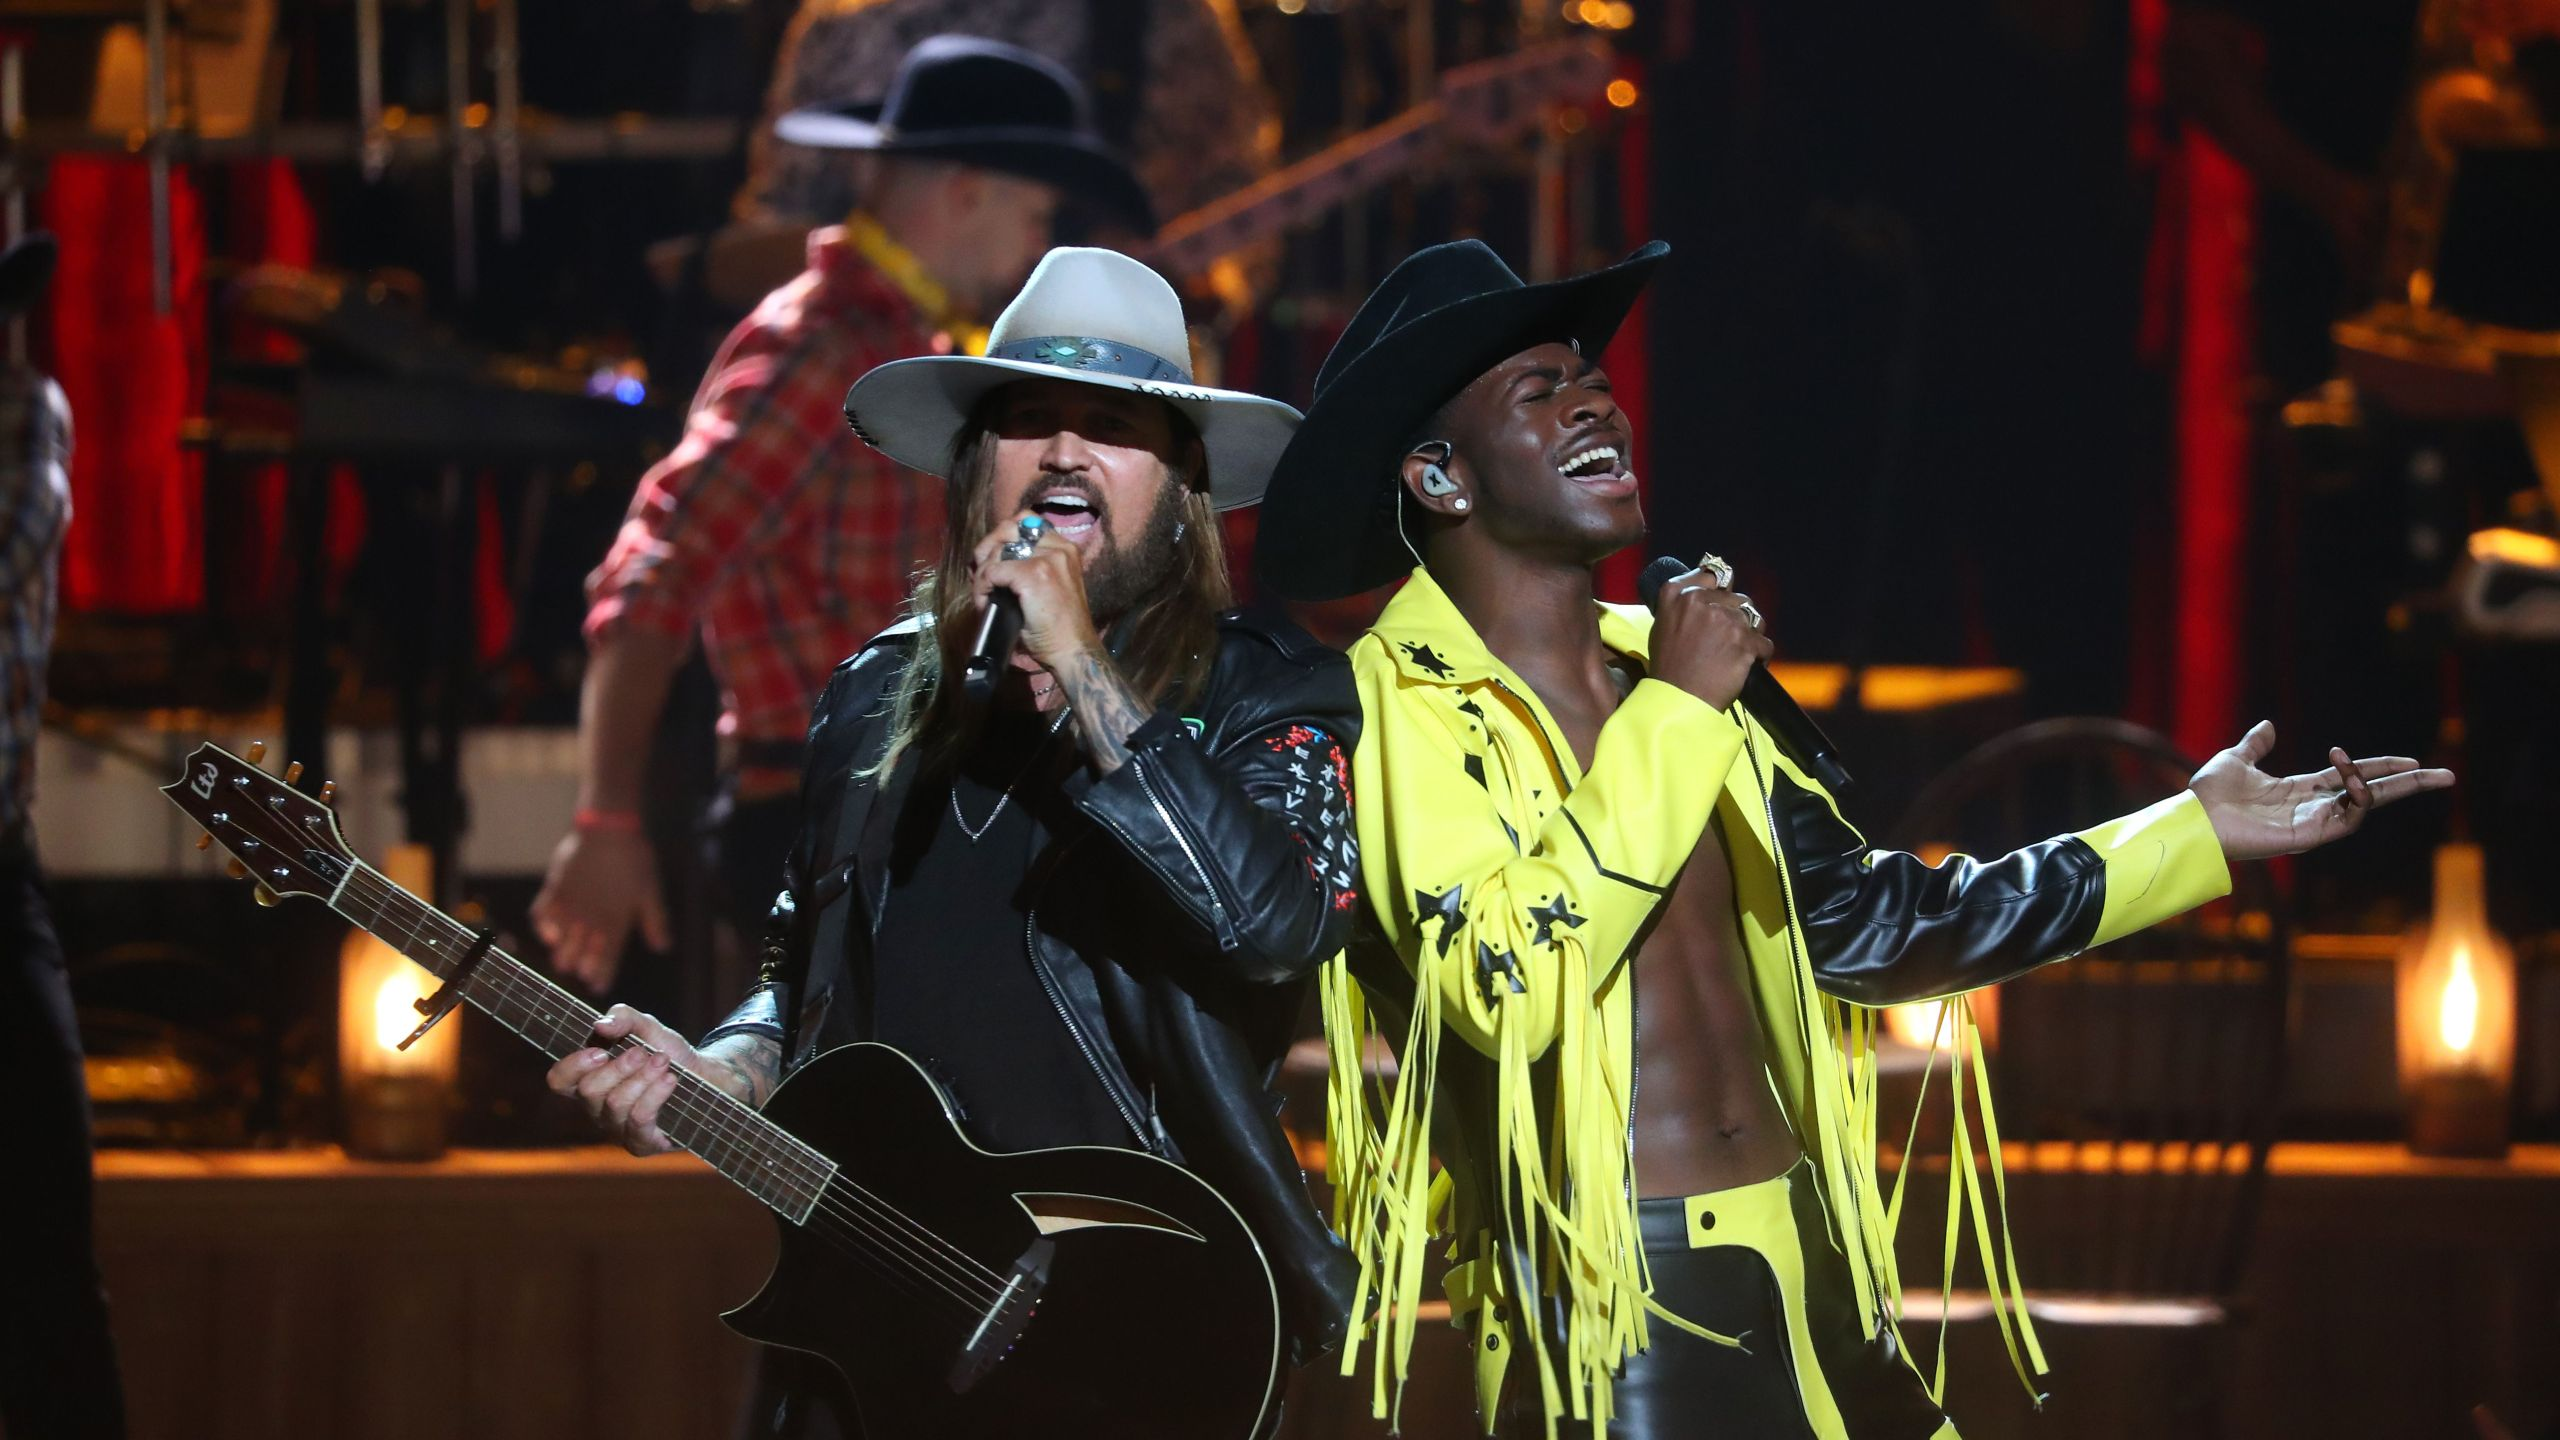 Billy Ray Cyrus and Lil Nas X perform onstage during the 2019 BET awards at Microsoft Theater in Los Angeles on June 23, 2019. (Credit: JEAN-BAPTISTE LACROIX/AFP/Getty Images)